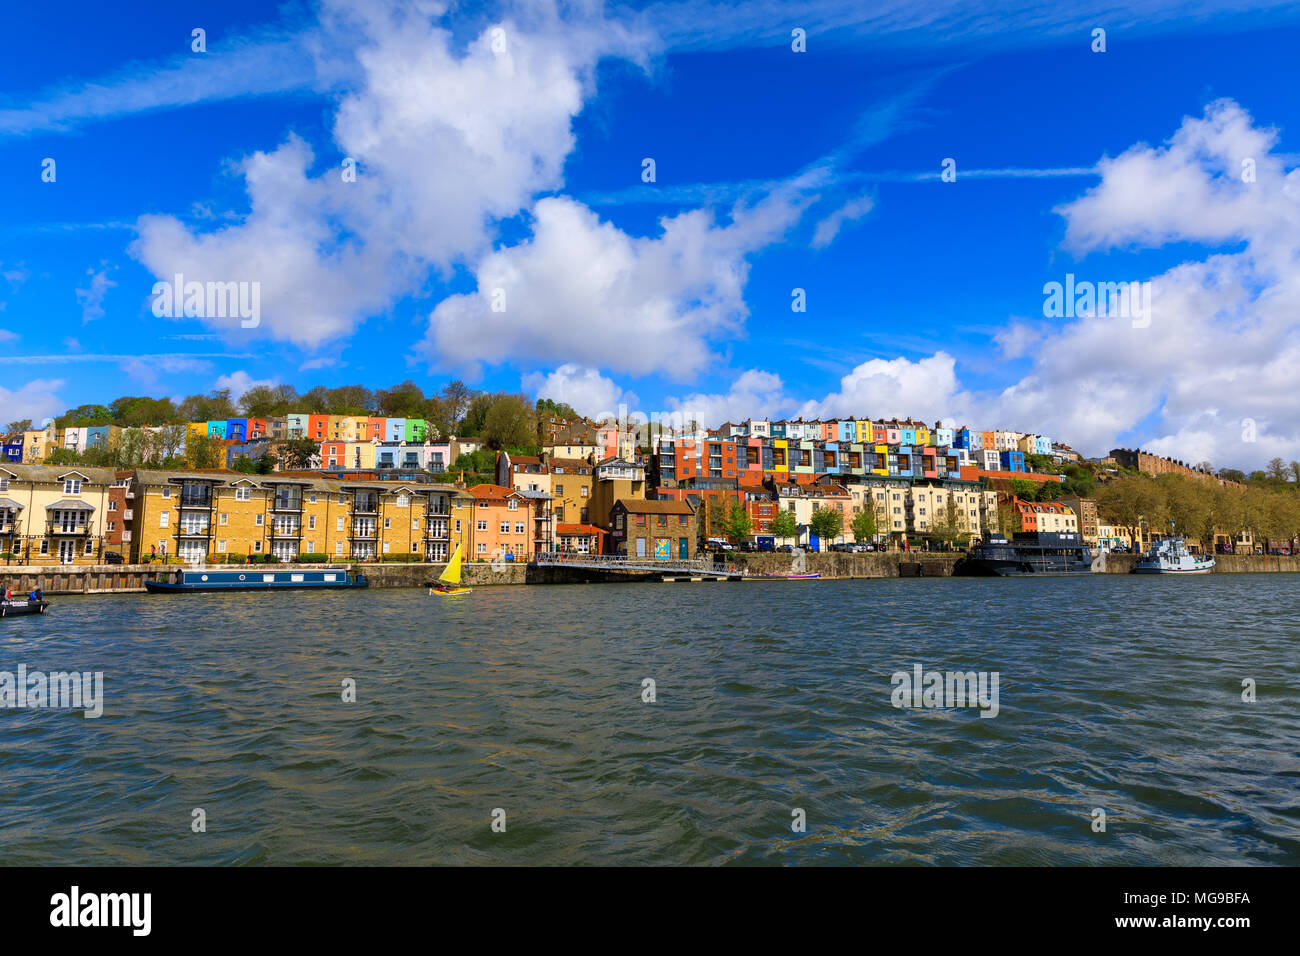 View across the river Avon of fluffy clouds over colourful houses of Bristol (UK). - Stock Image